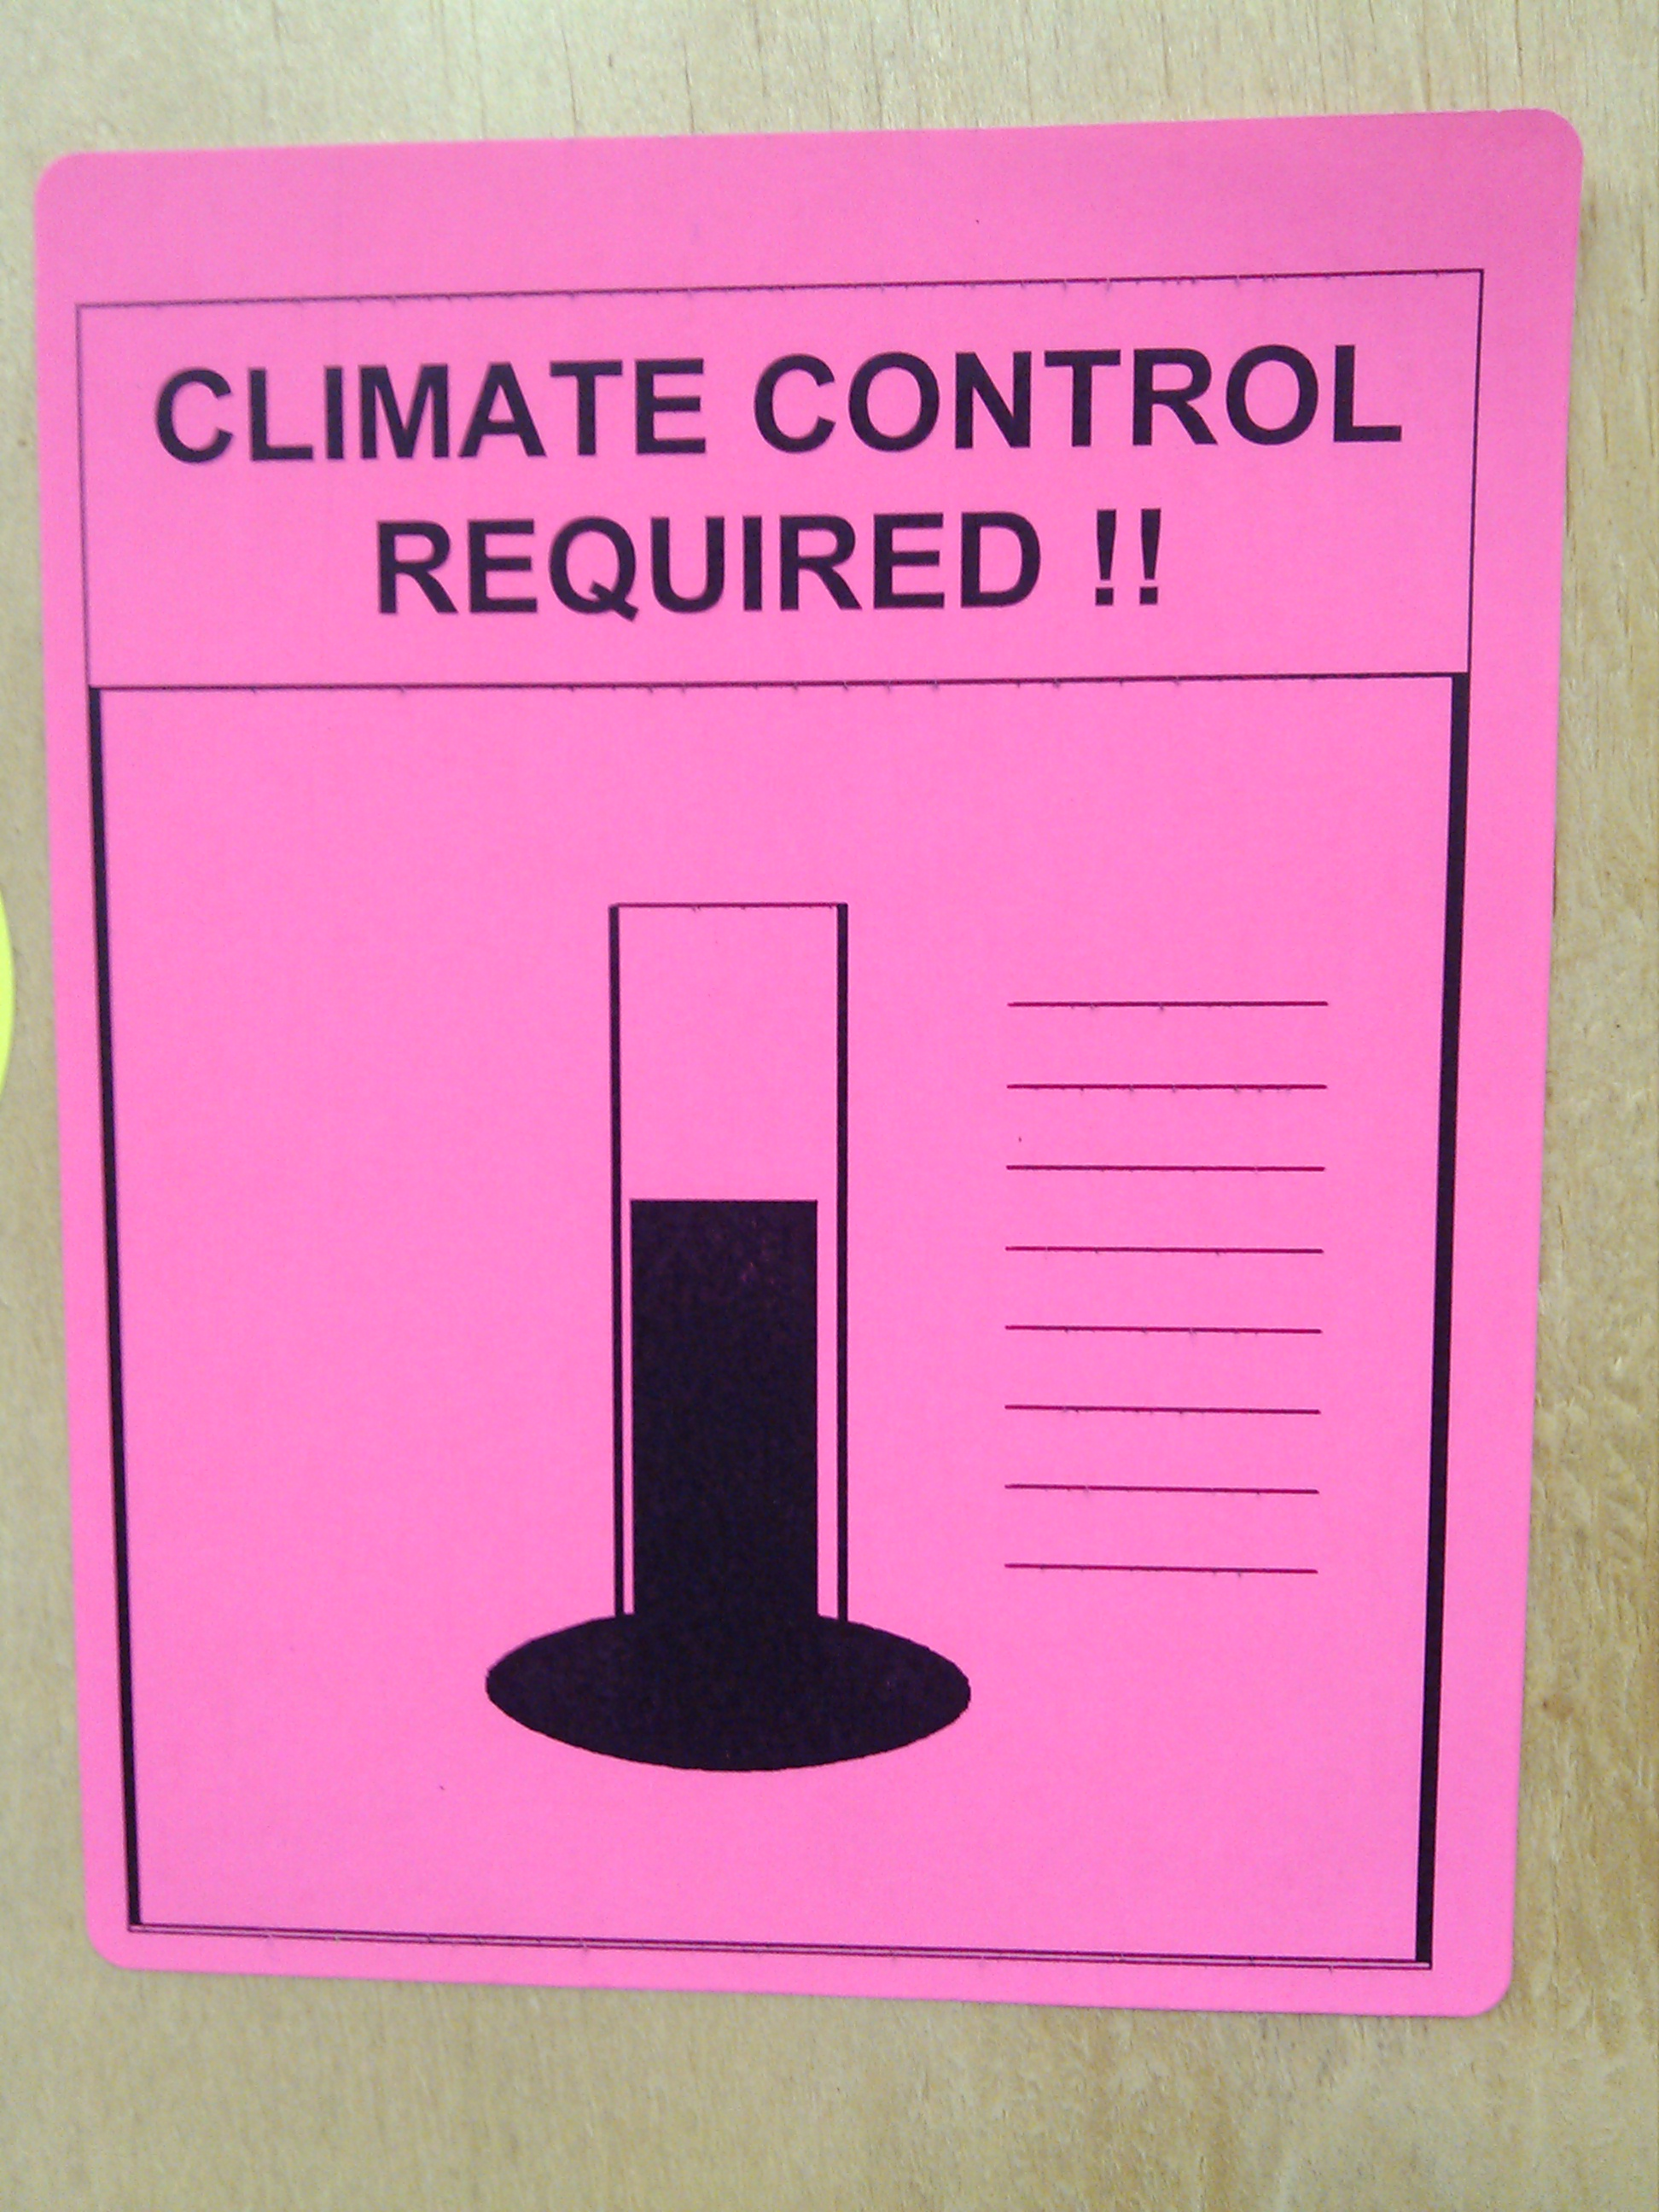 Climate monitored signage